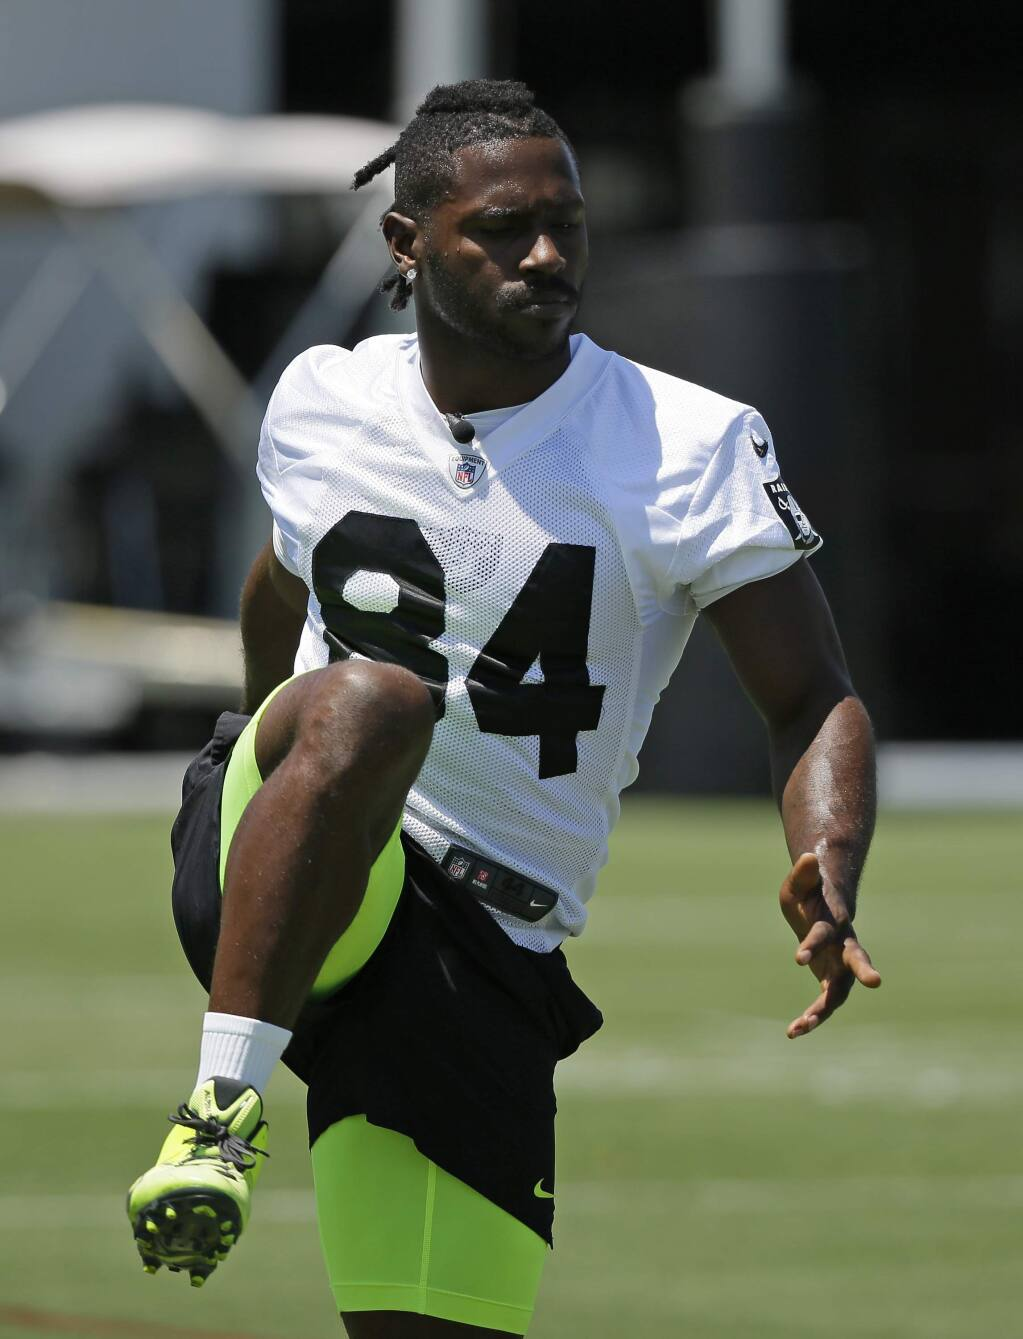 Oakland Raiders' Antonio Brown during NFL football minicamp Tuesday, June 11, 2019, in Alameda, Calif. (AP Photo/Eric Risberg)